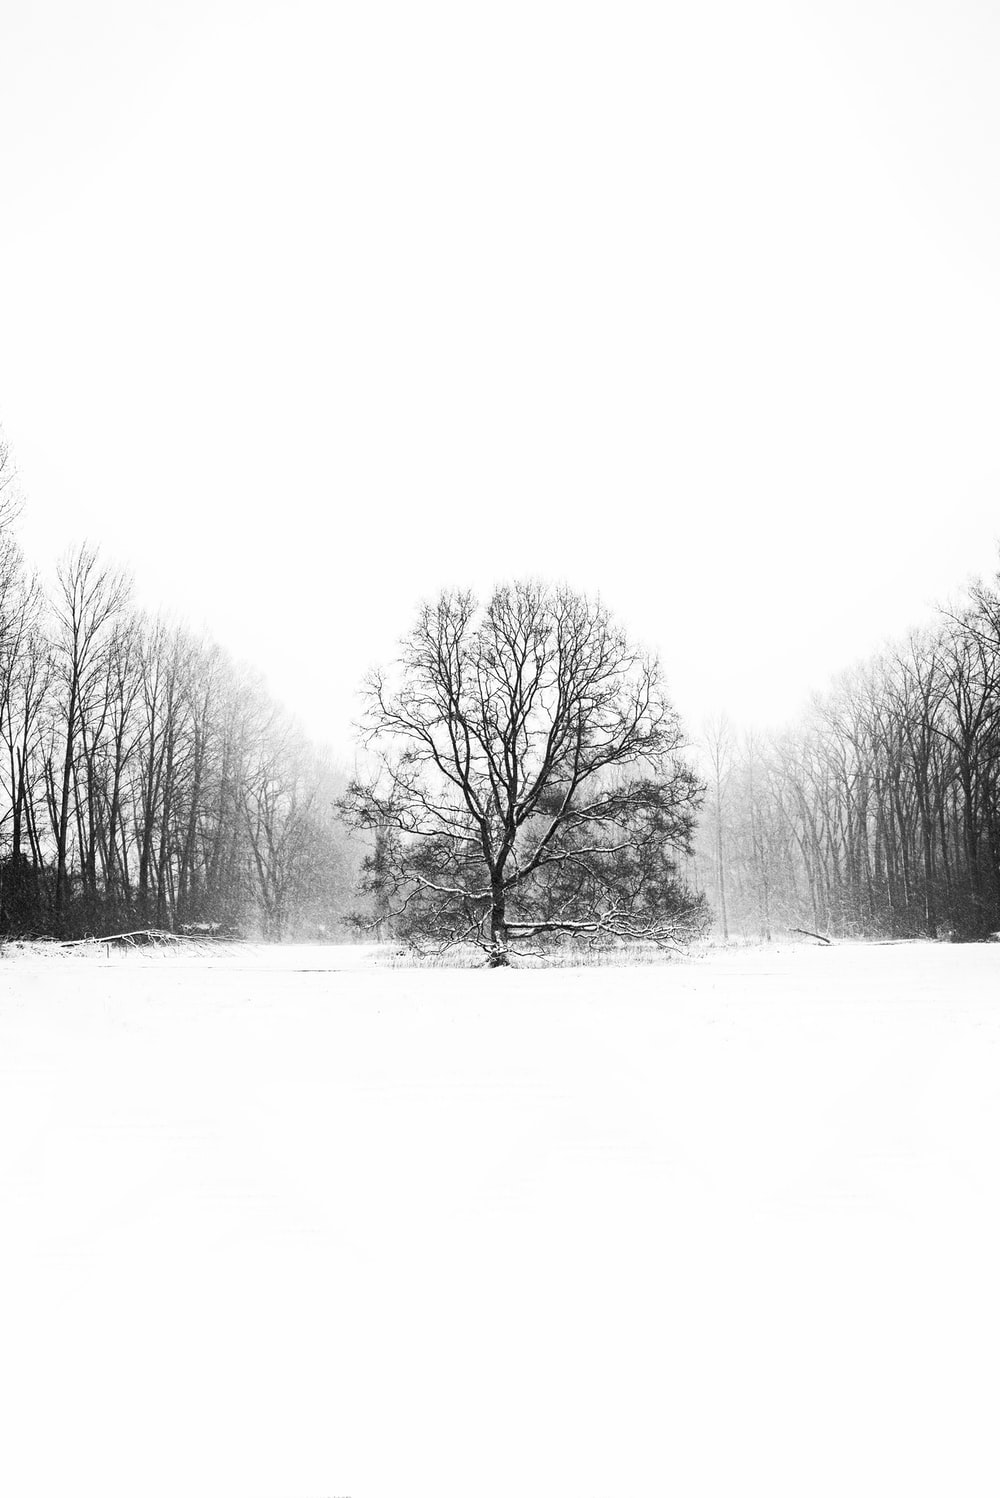 grayscale photo of trees and grass